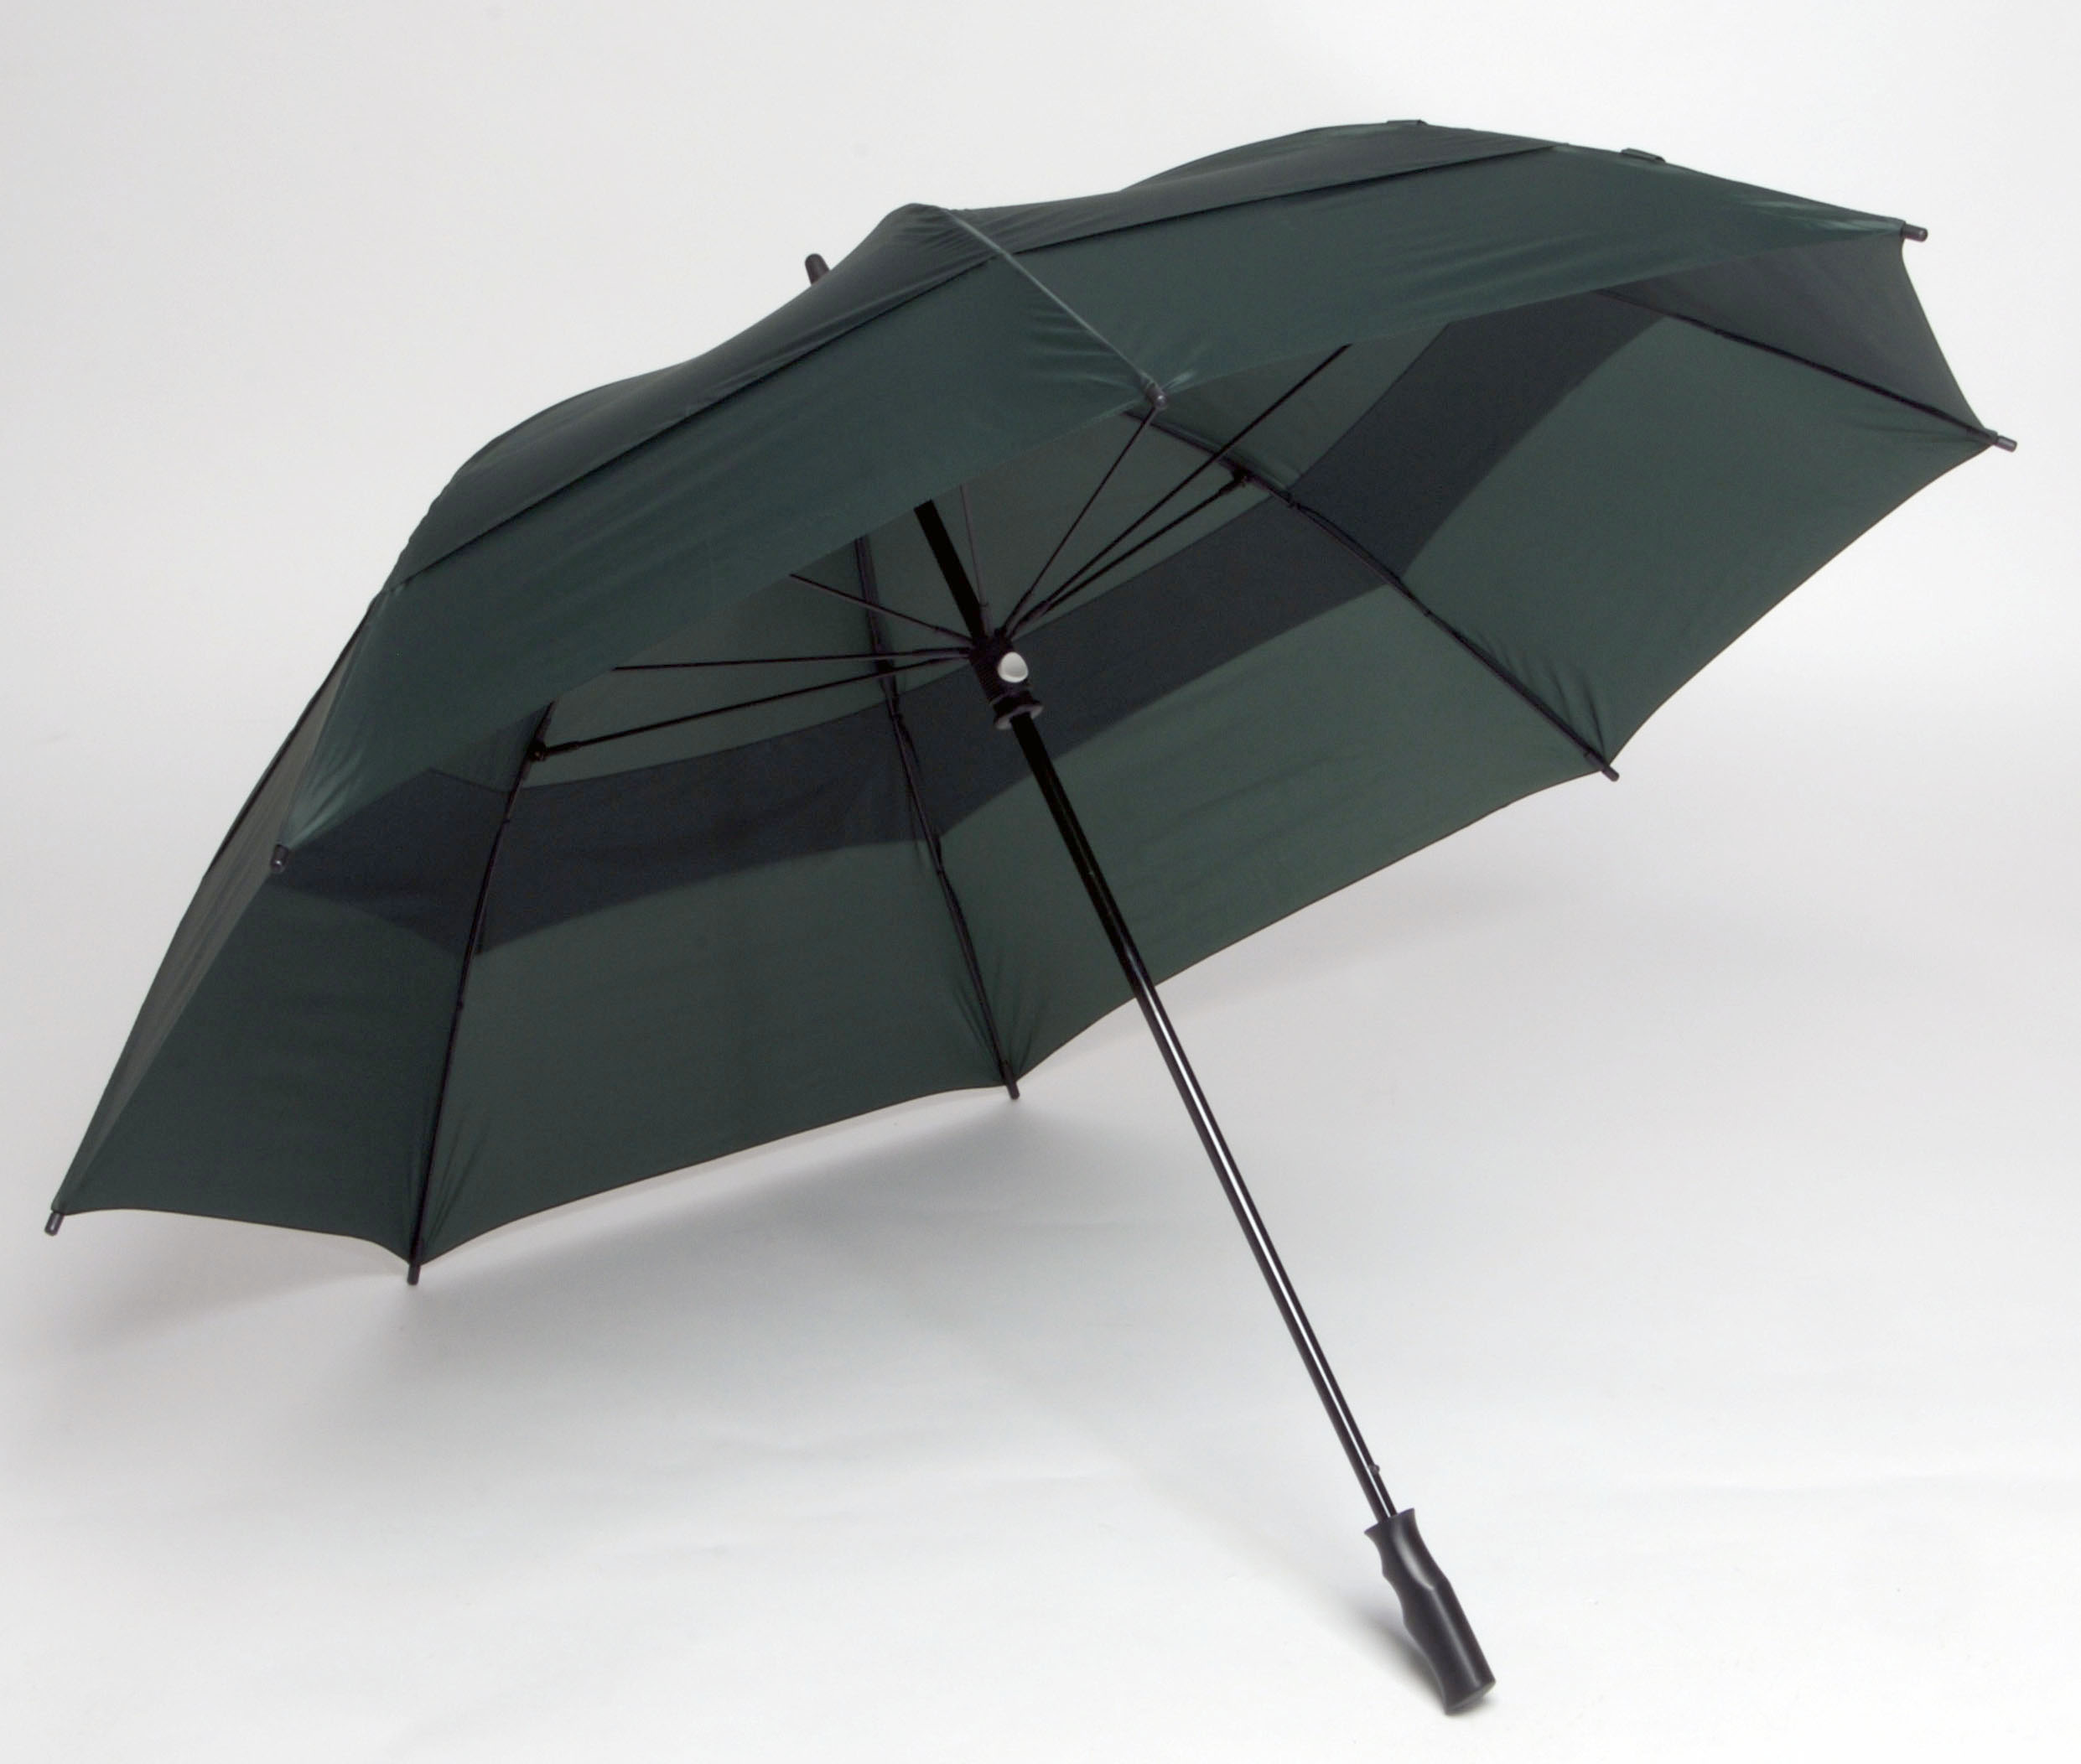 WINDBRELLA golf umbrella